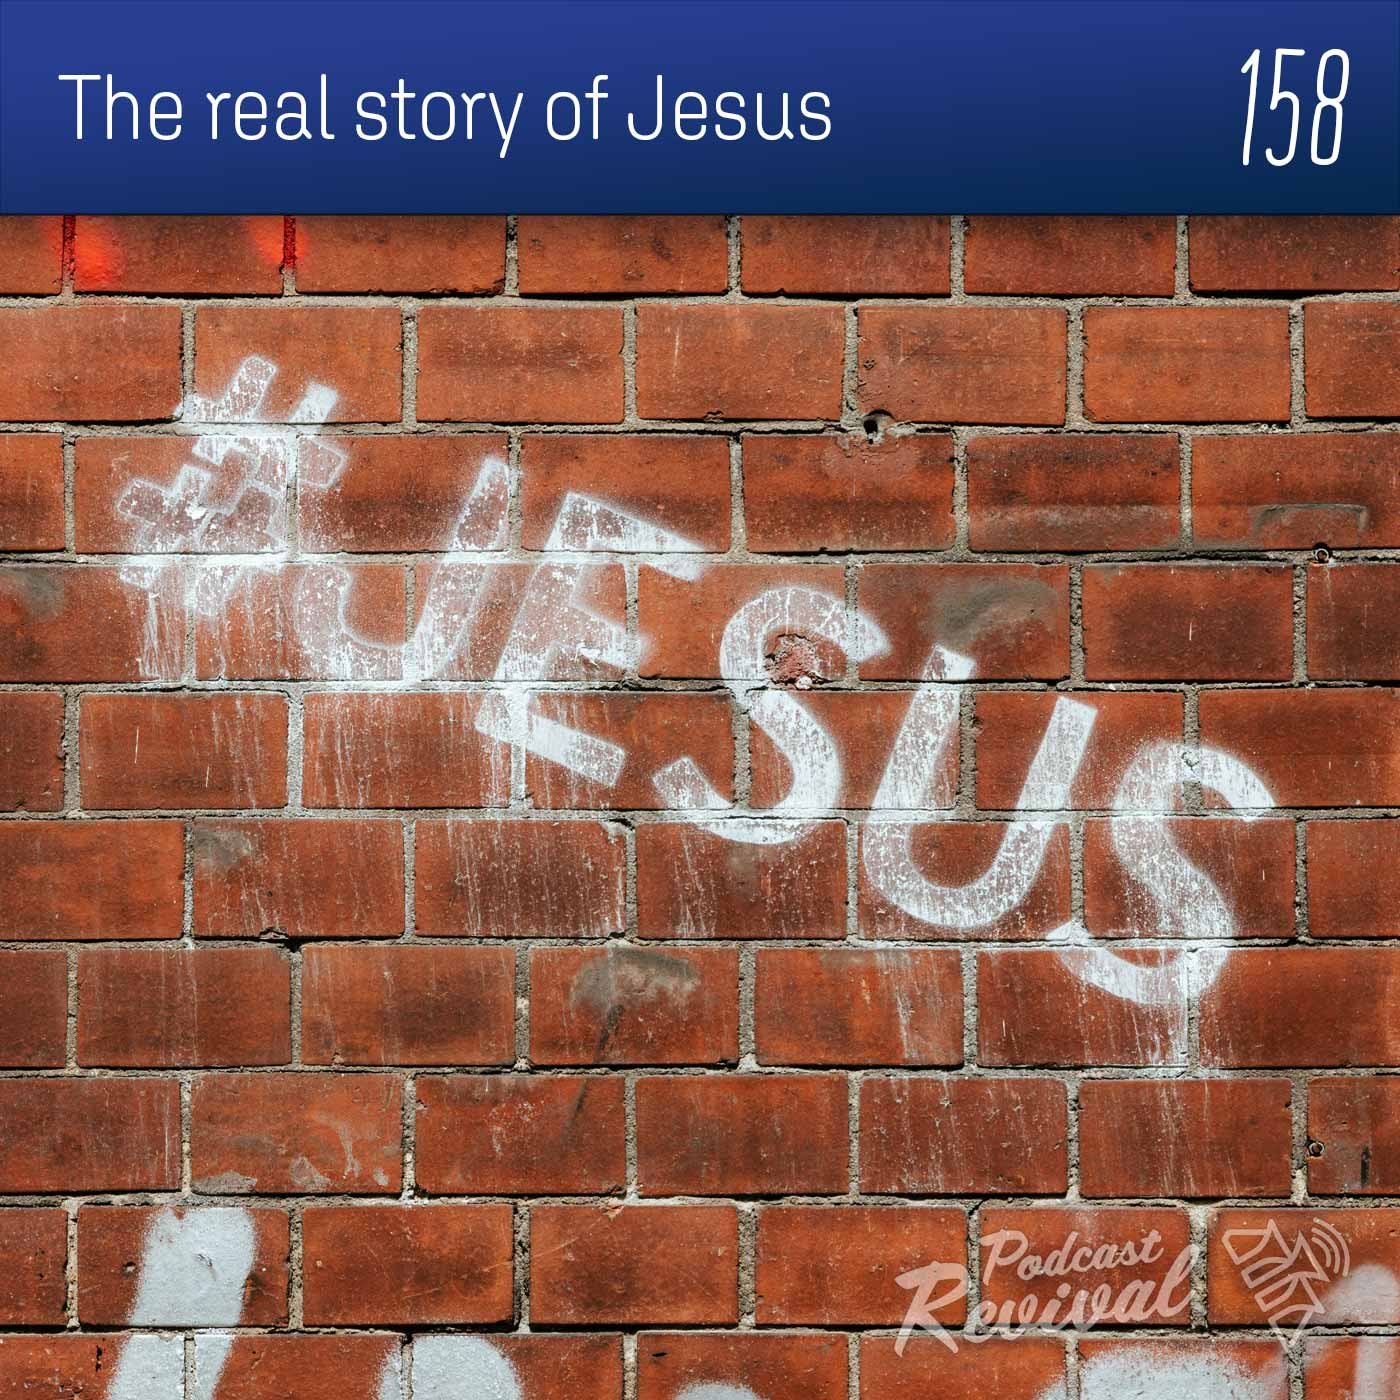 The real story of Jesus